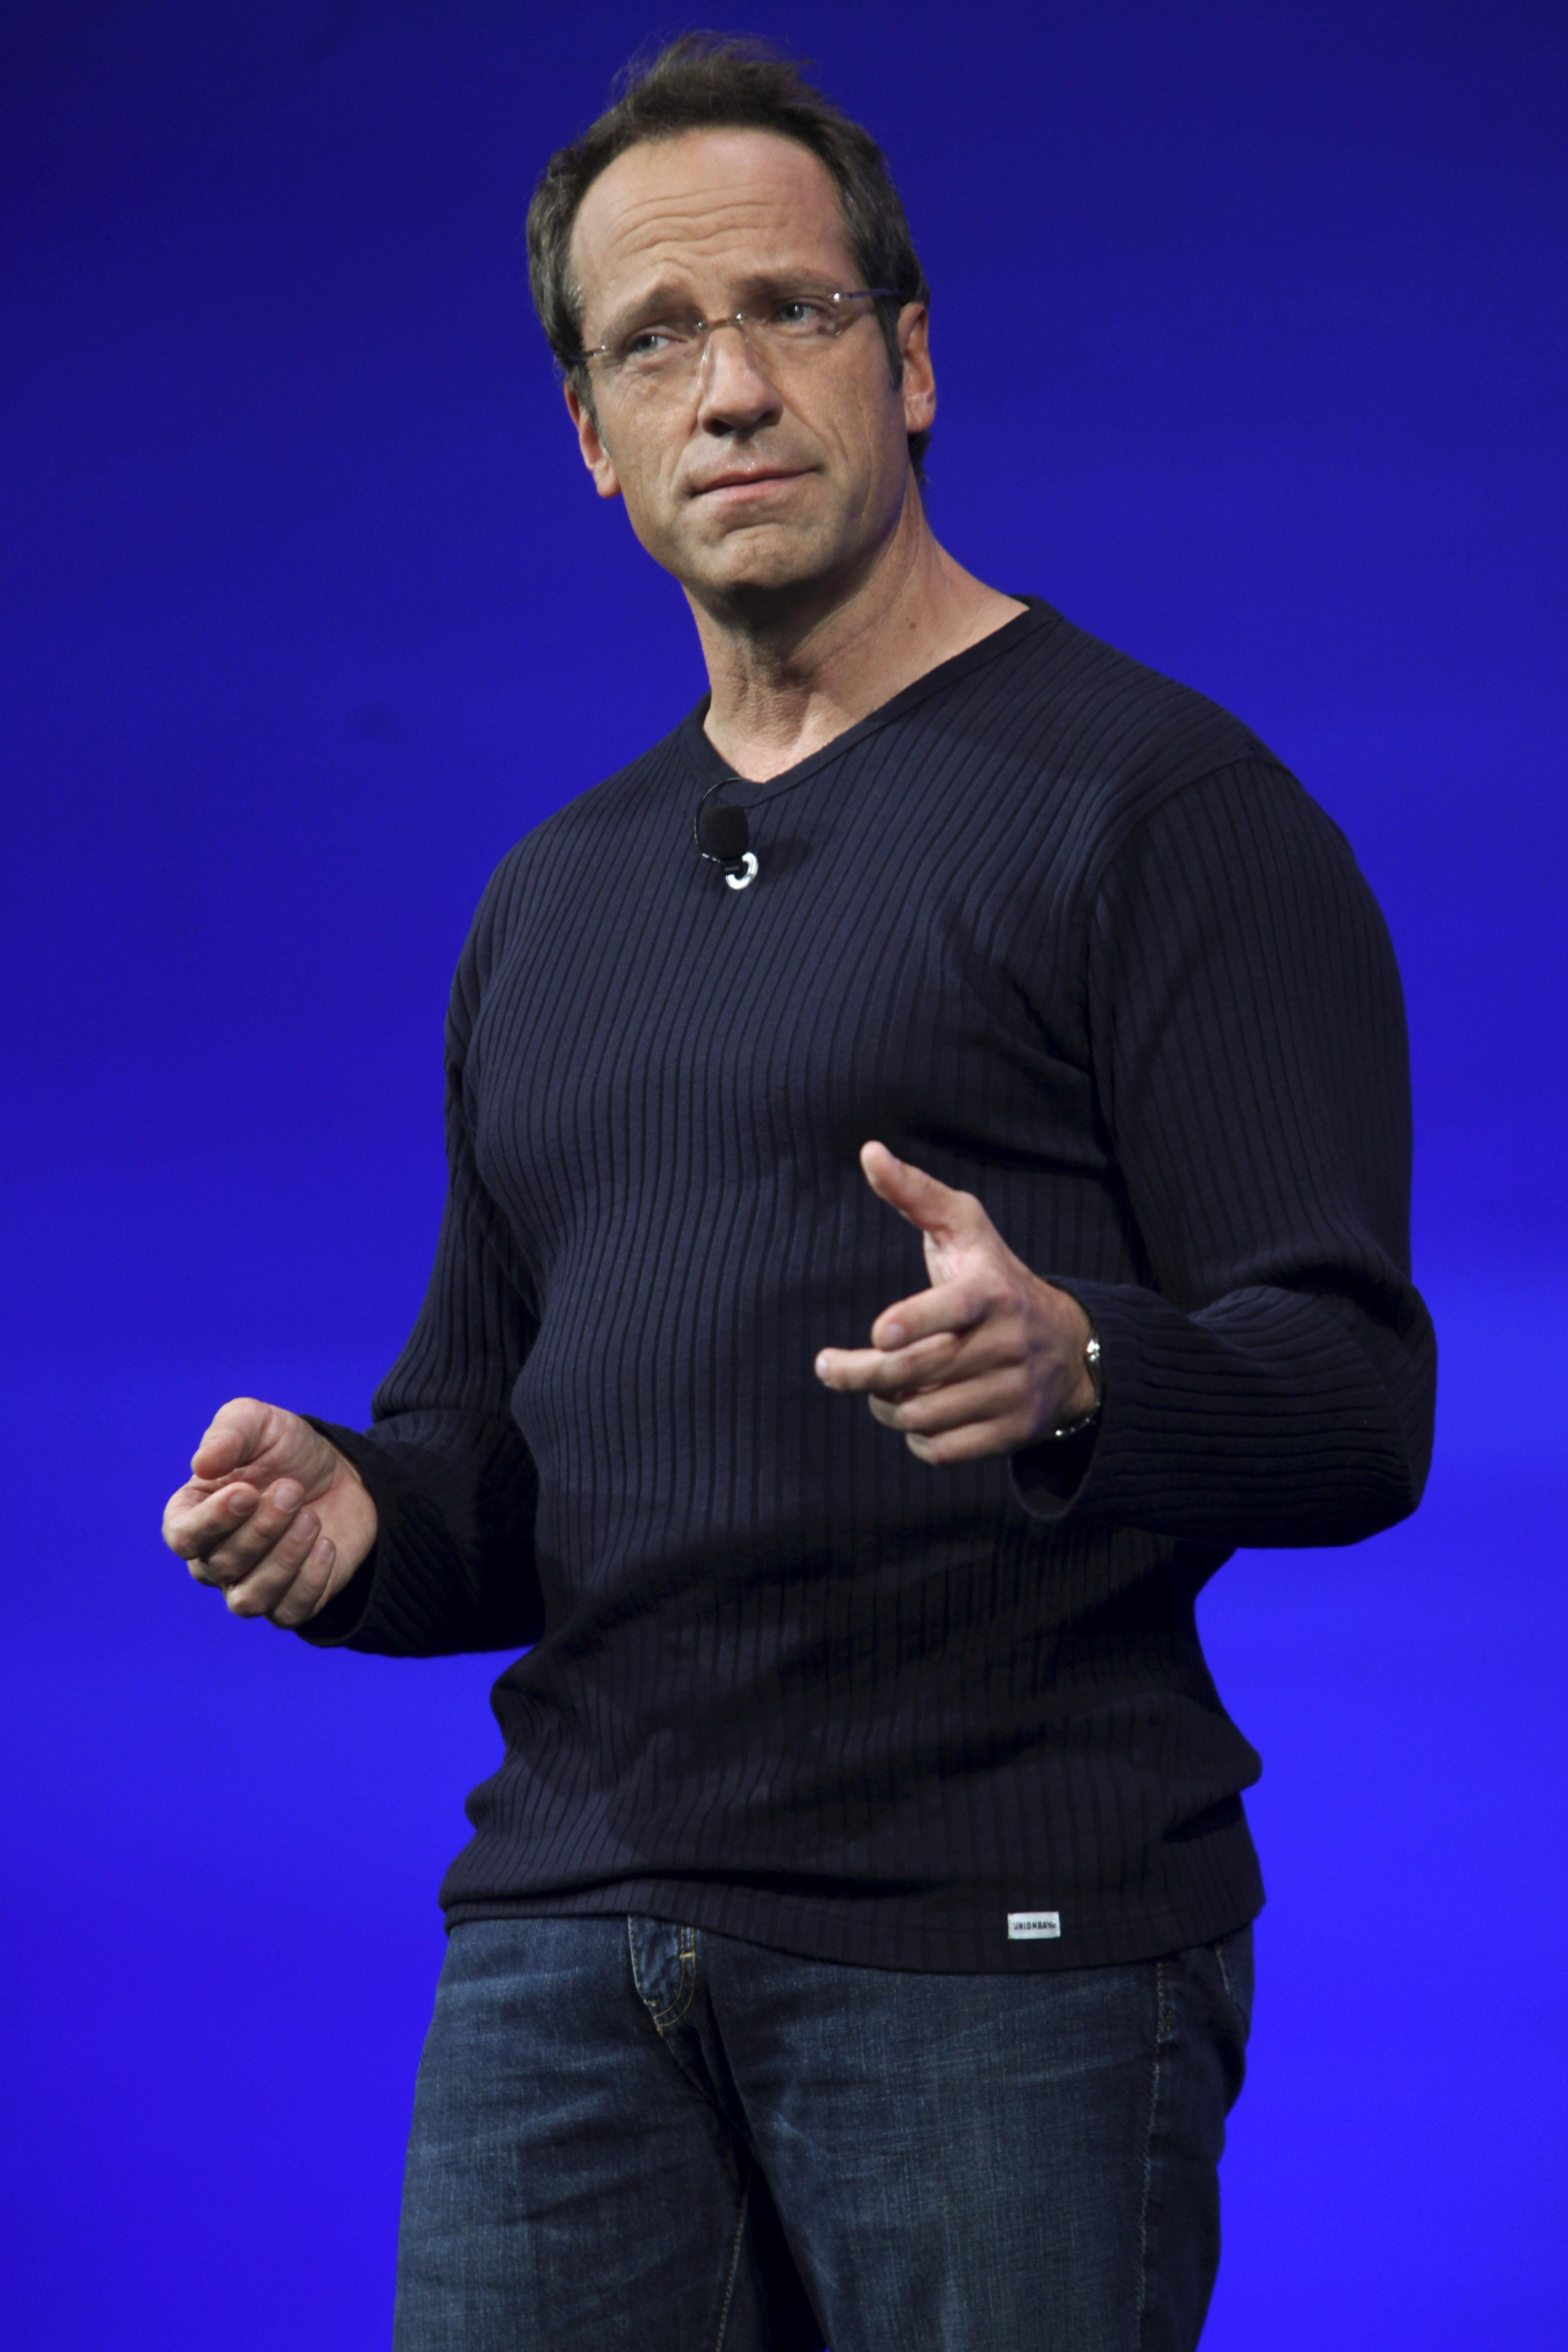 Mike Rowe rips 'smug' reader for 'white nationalist' insinuation, attack on Republicans